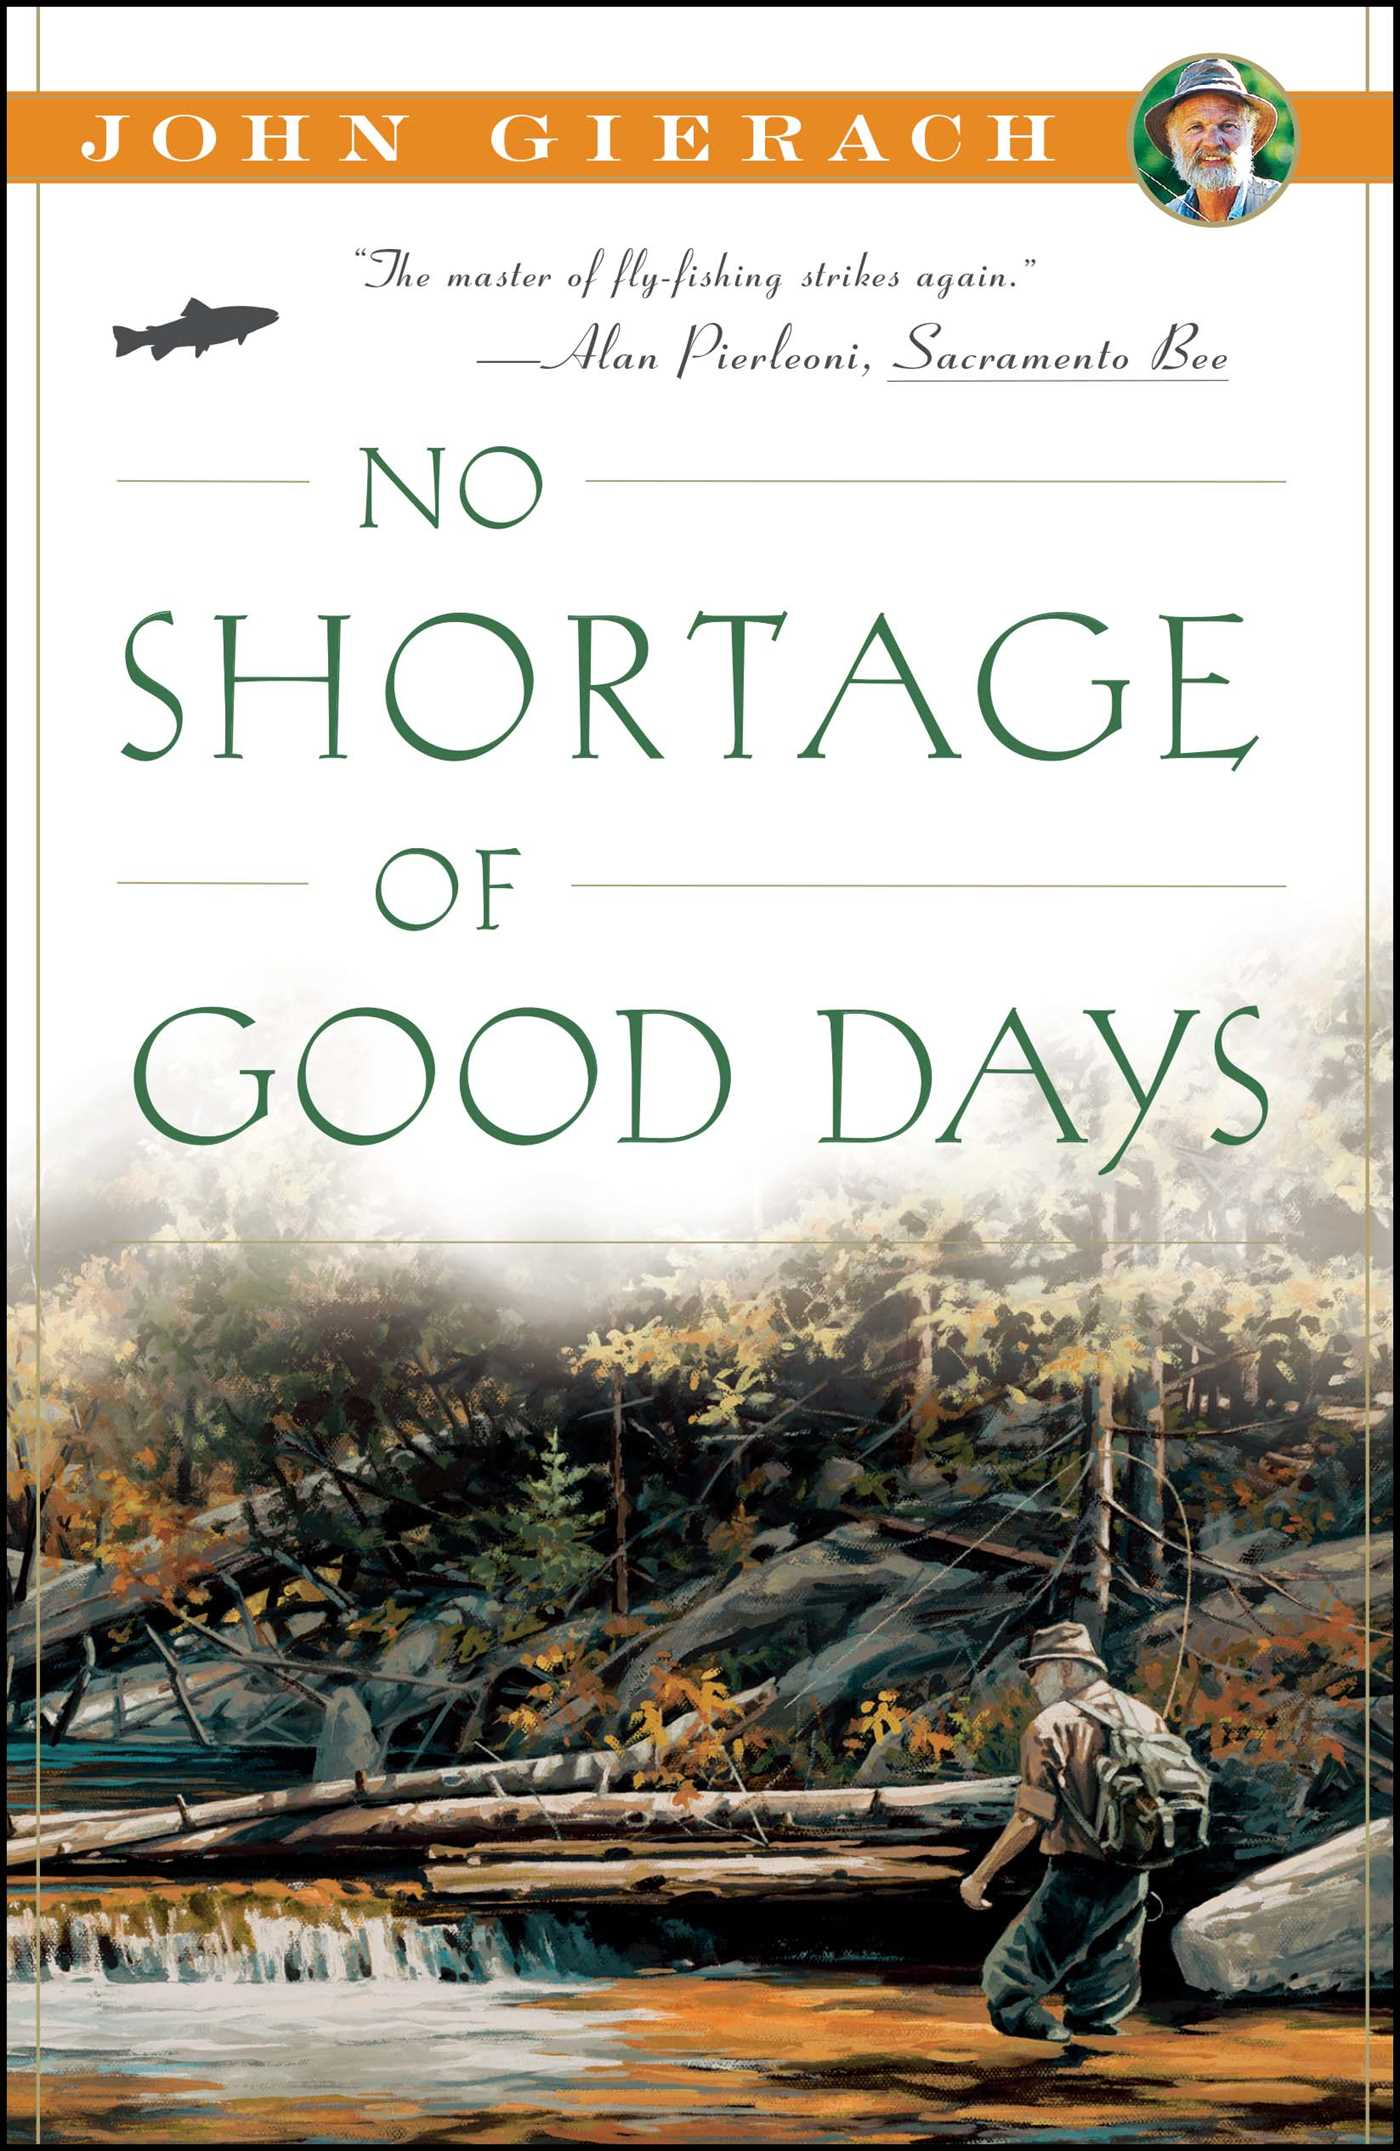 No shortage of good days 9780743291767 hr